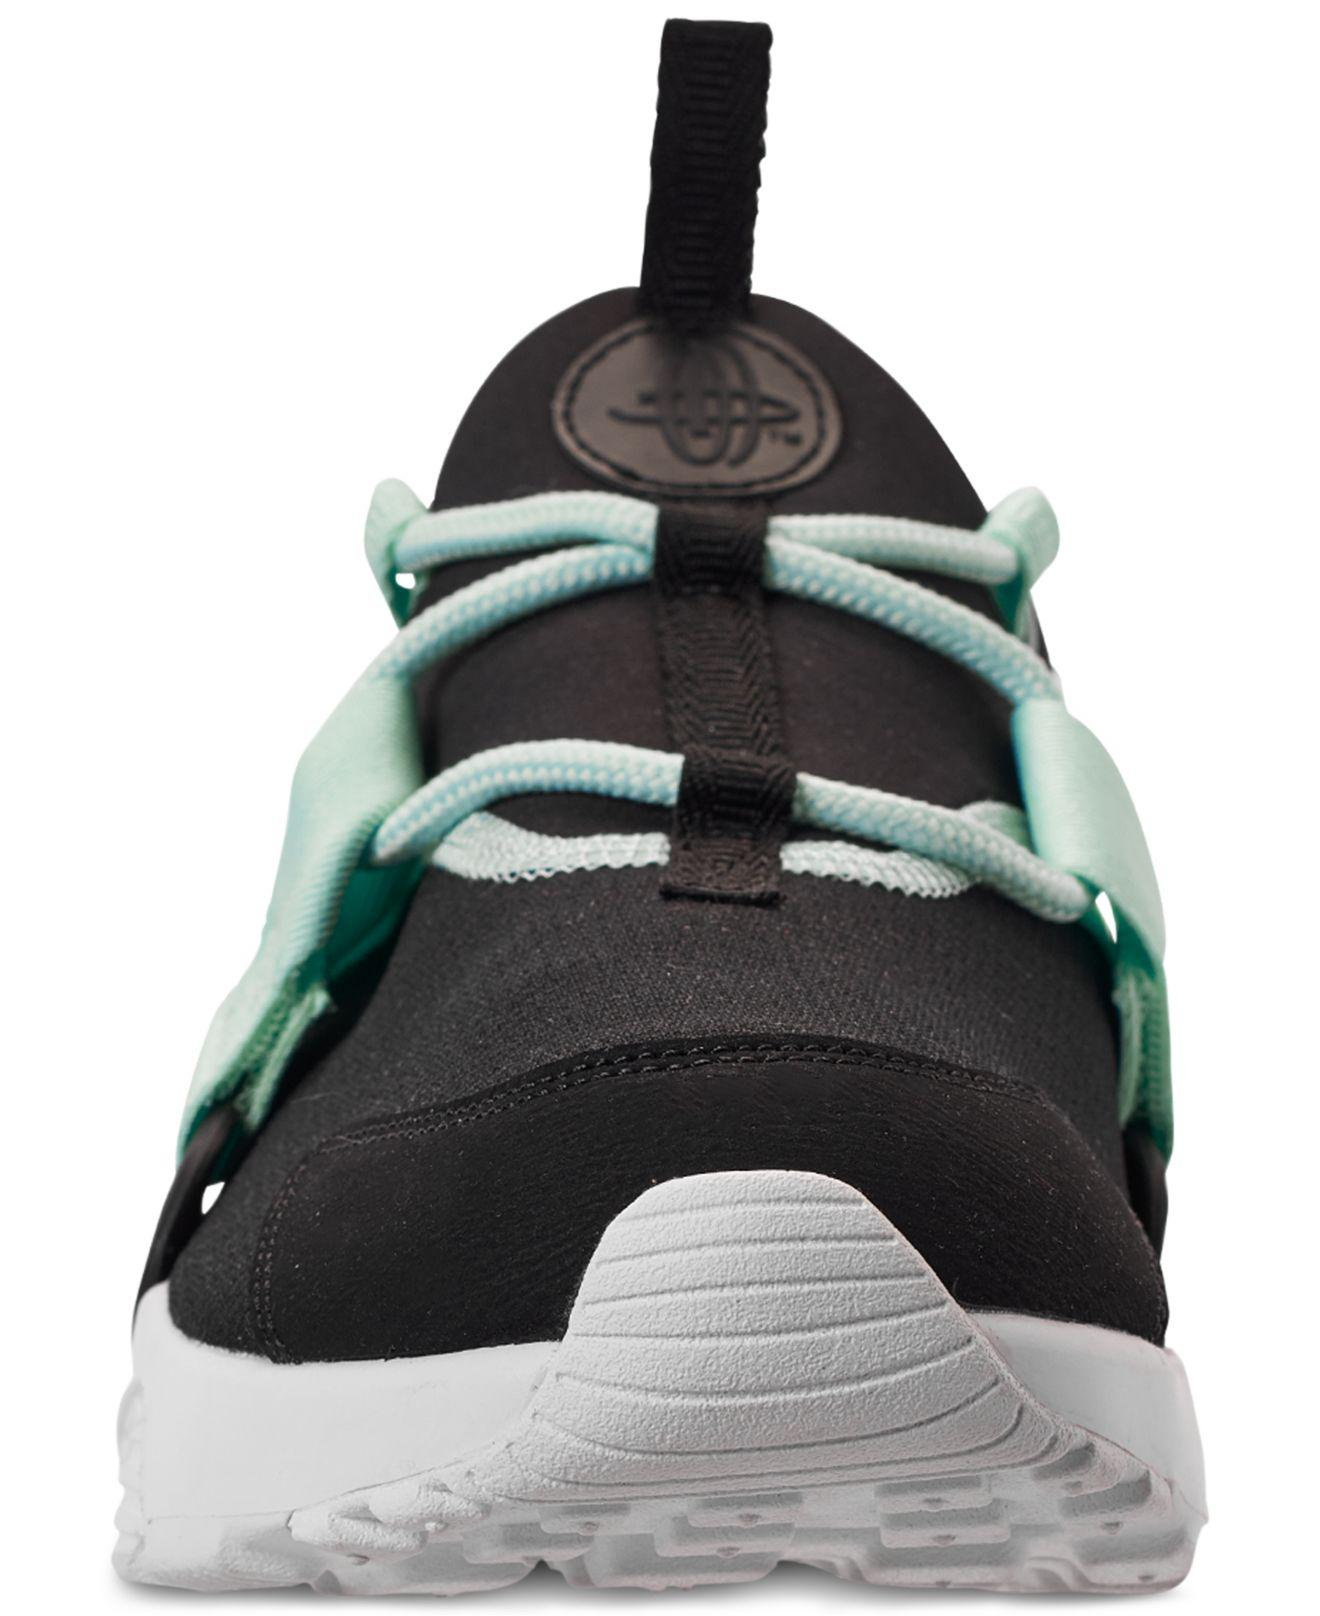 96deaae4e364 Nike - Black Air Huarache City Low Casual Sneakers From Finish Line - Lyst.  View fullscreen